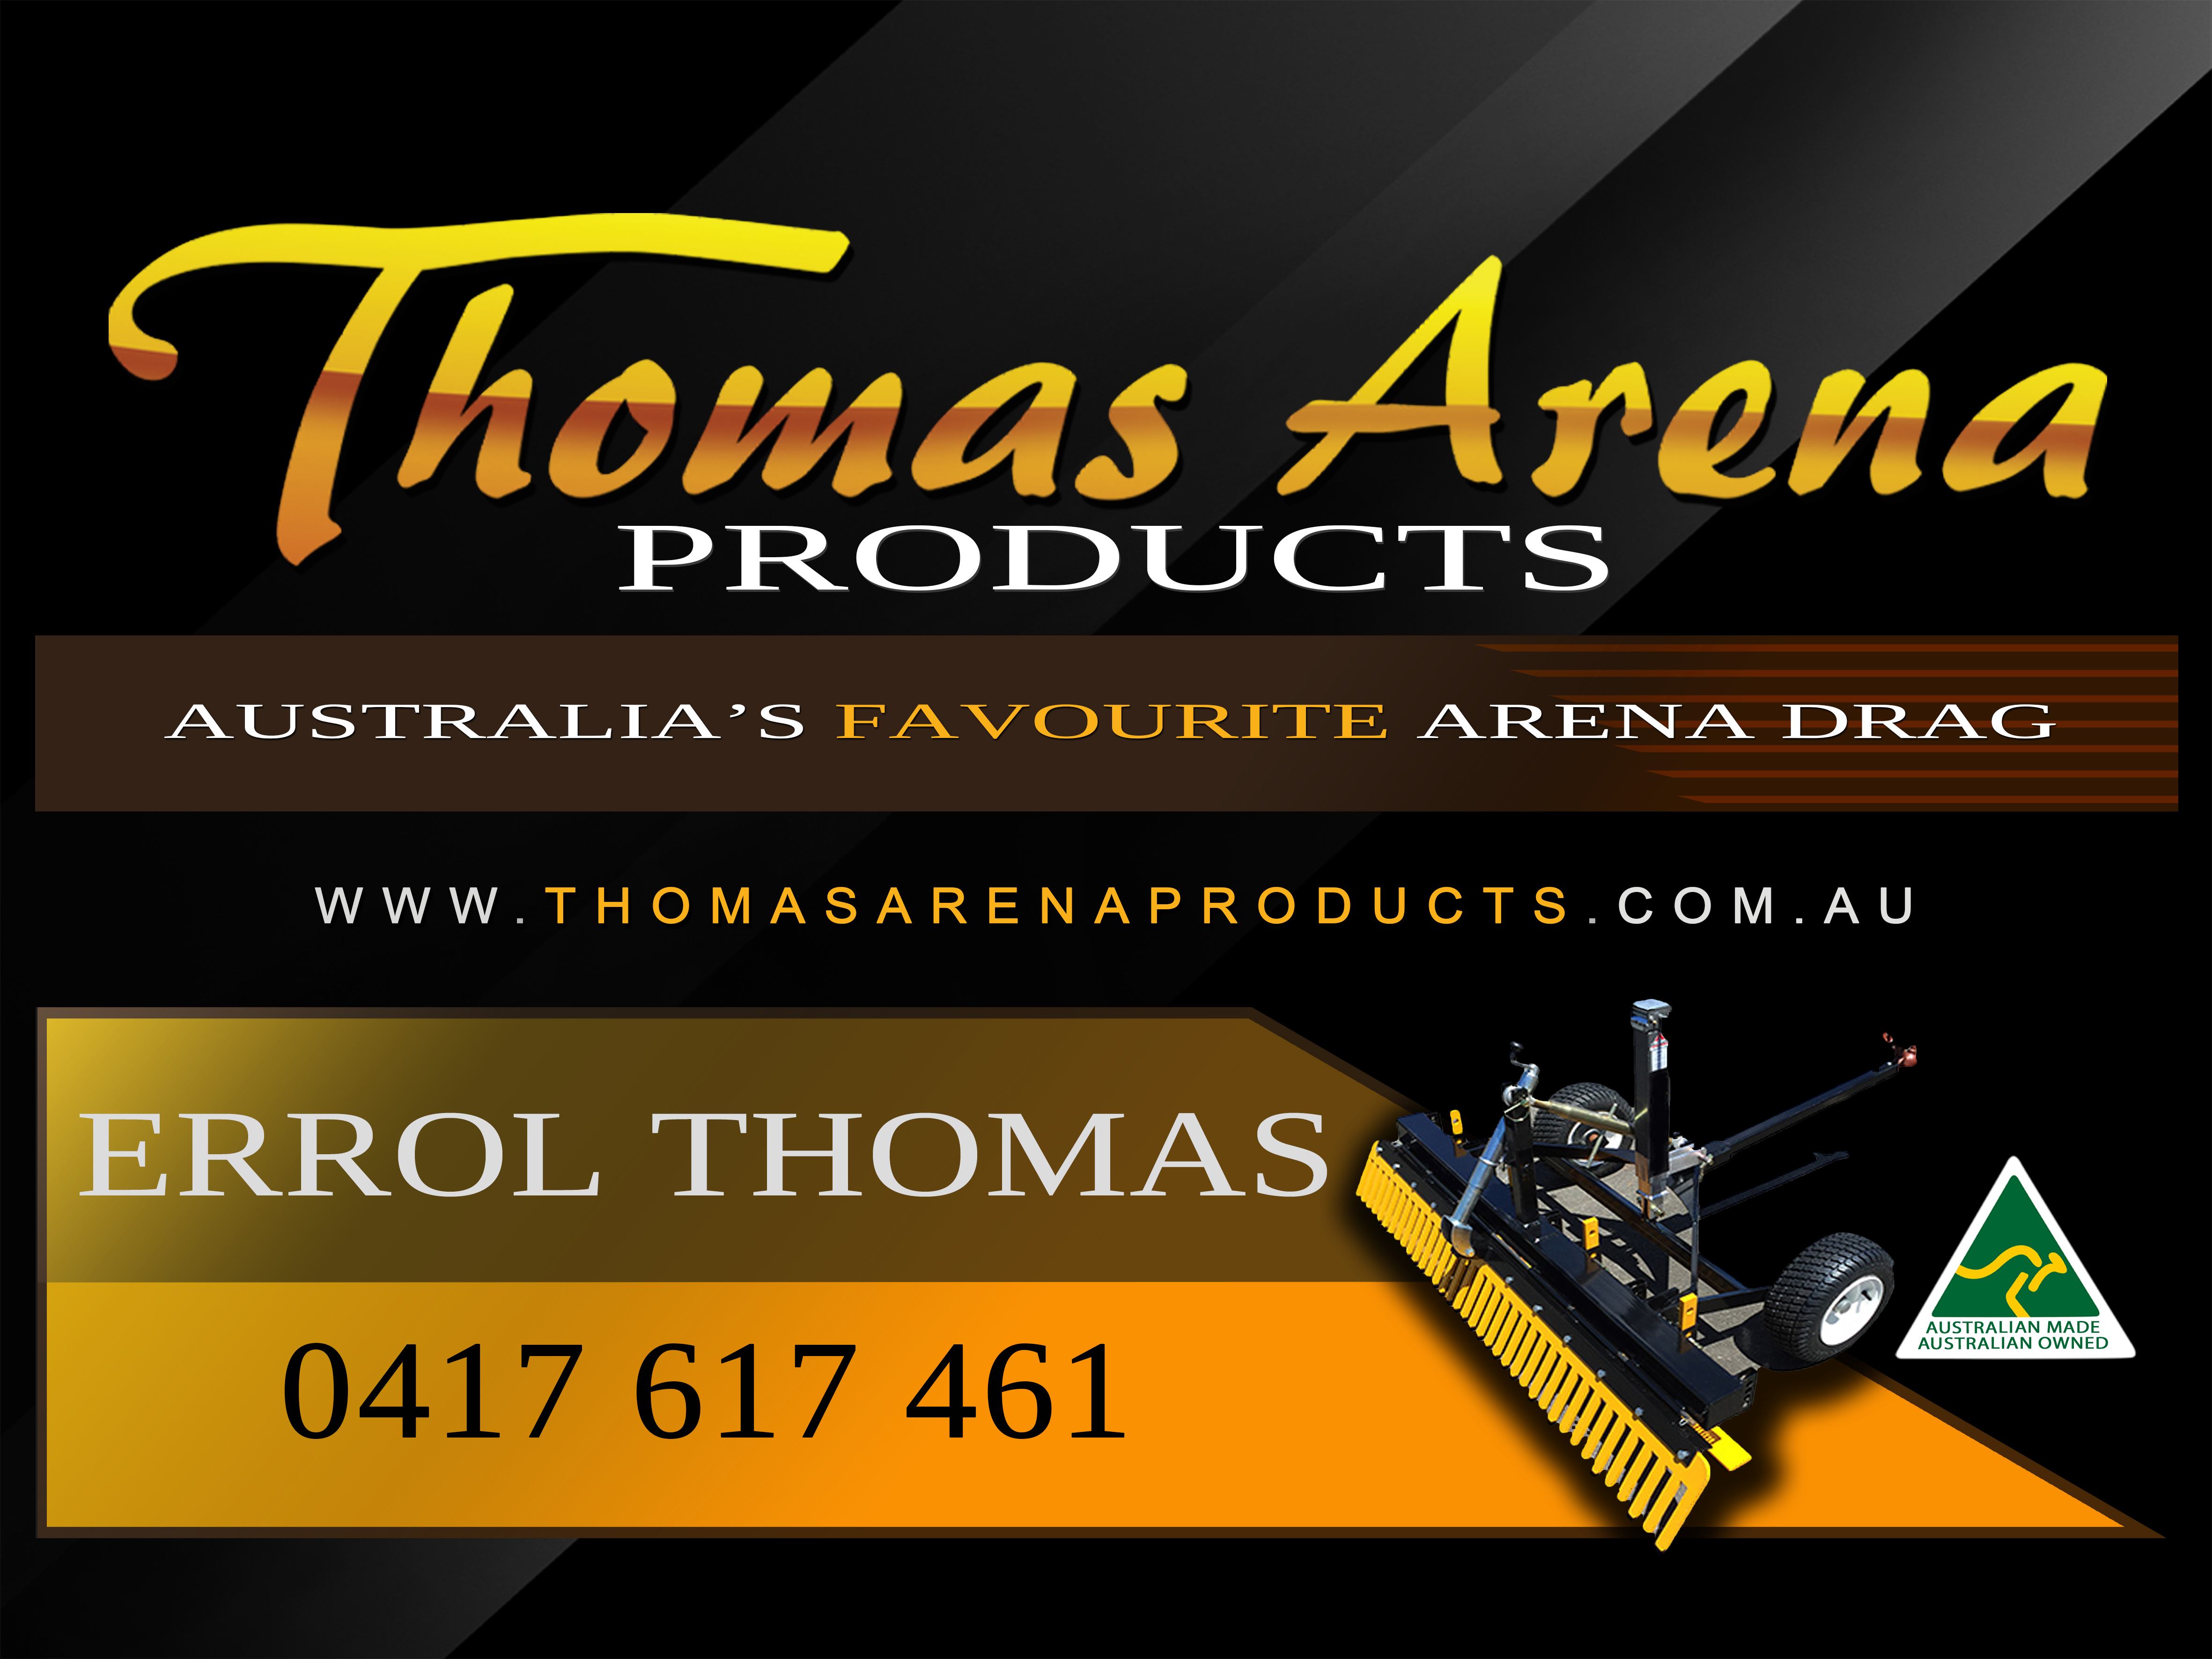 Thomas Aren Products